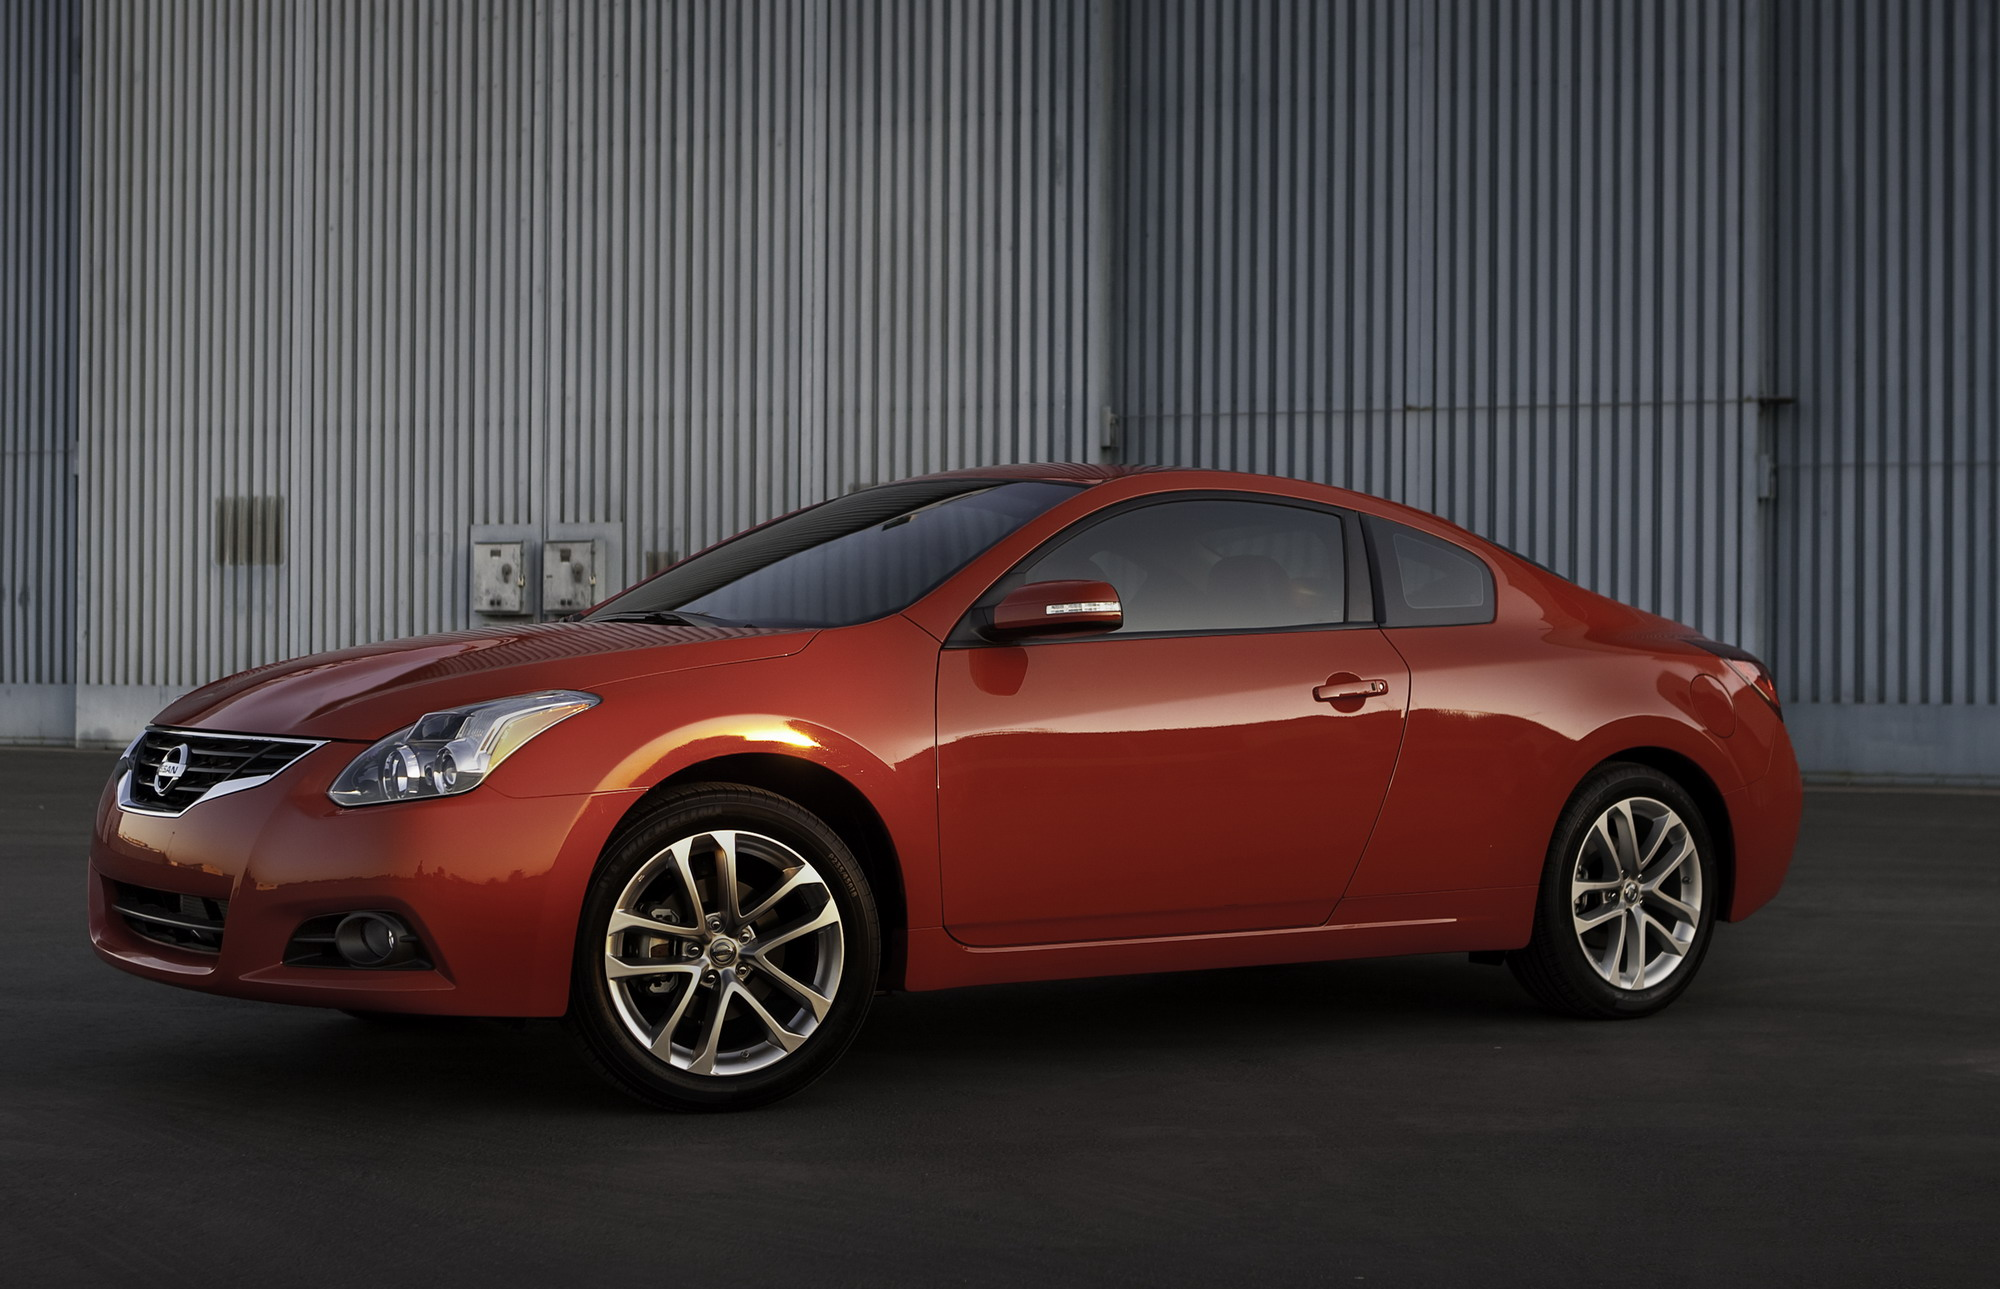 2011 Nissan Altima Coupe | Top Speed